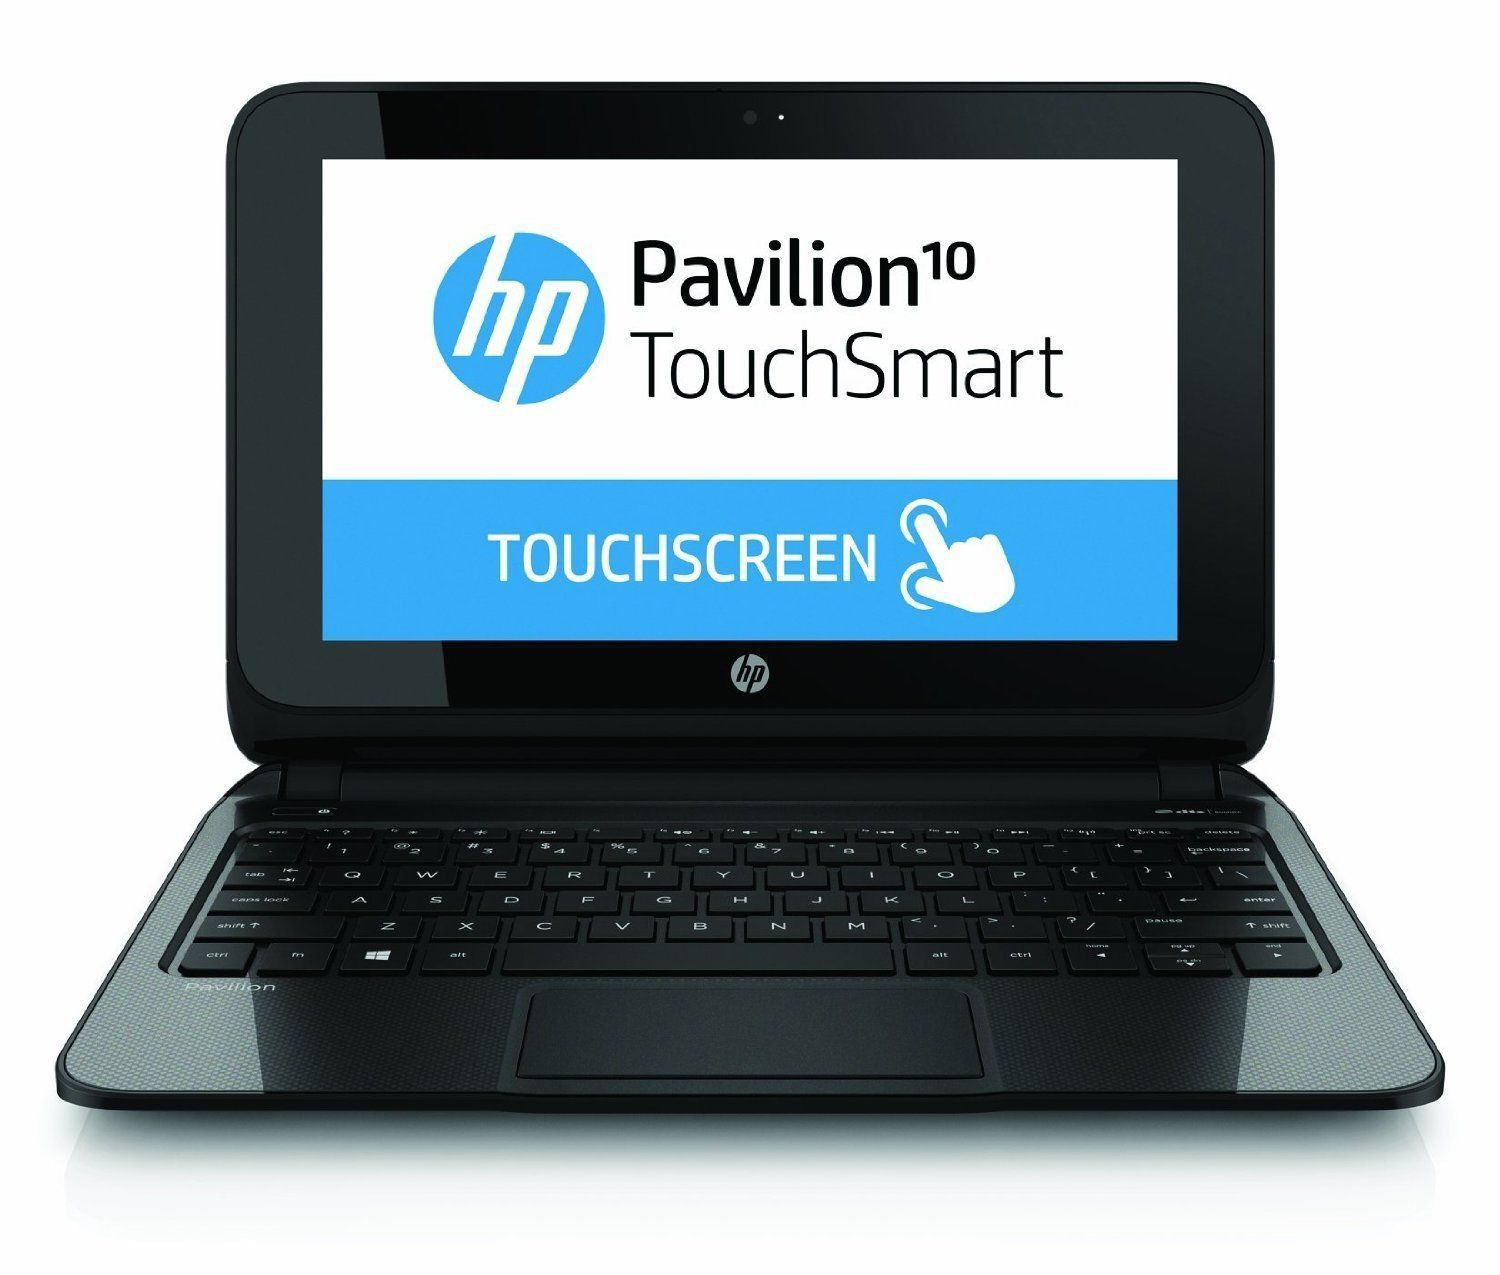 #HPPavilion10-e010nr 10.1-InchTouchscreenLaptop #Computer #Office #Tablets